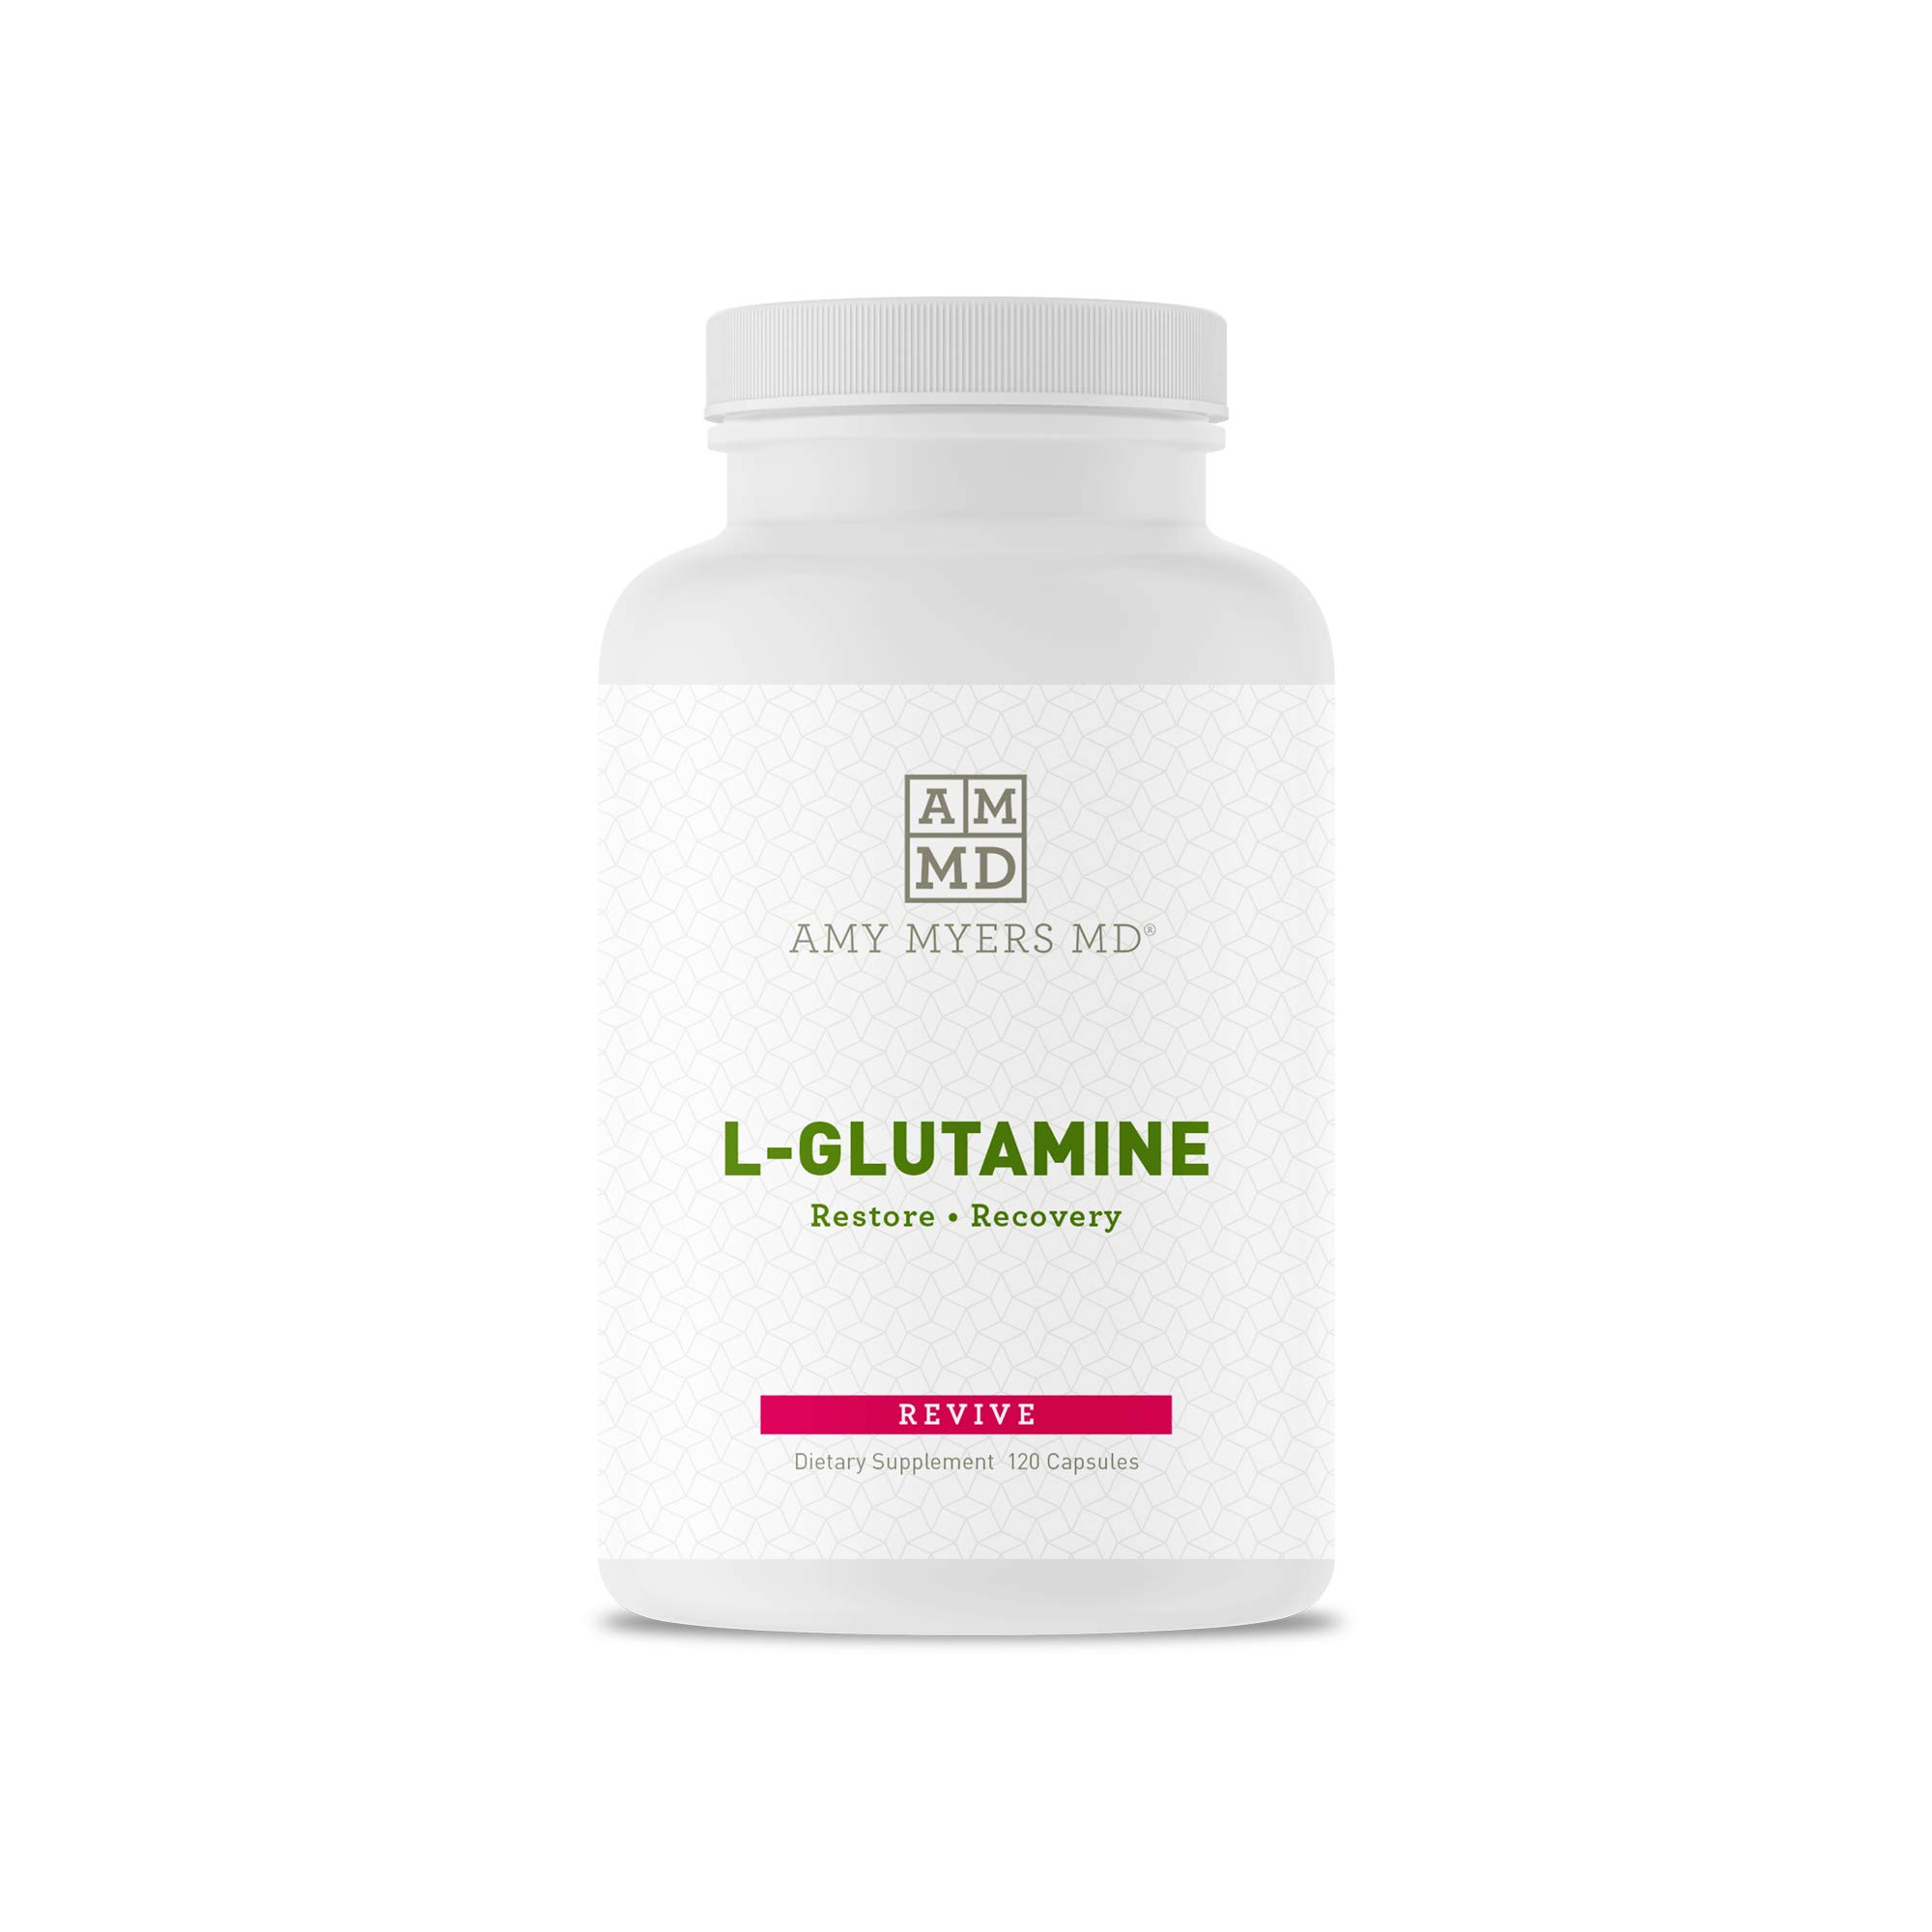 L-Glutamine Capsules from The Myers Way Protocol - Helps Beat Sugar Cravings & Support Healthy Weight Loss - Dietary Supplement, 120 Capsules 850 mg per Capsule - from Dr. Amy Myers by Amy Myers, MD